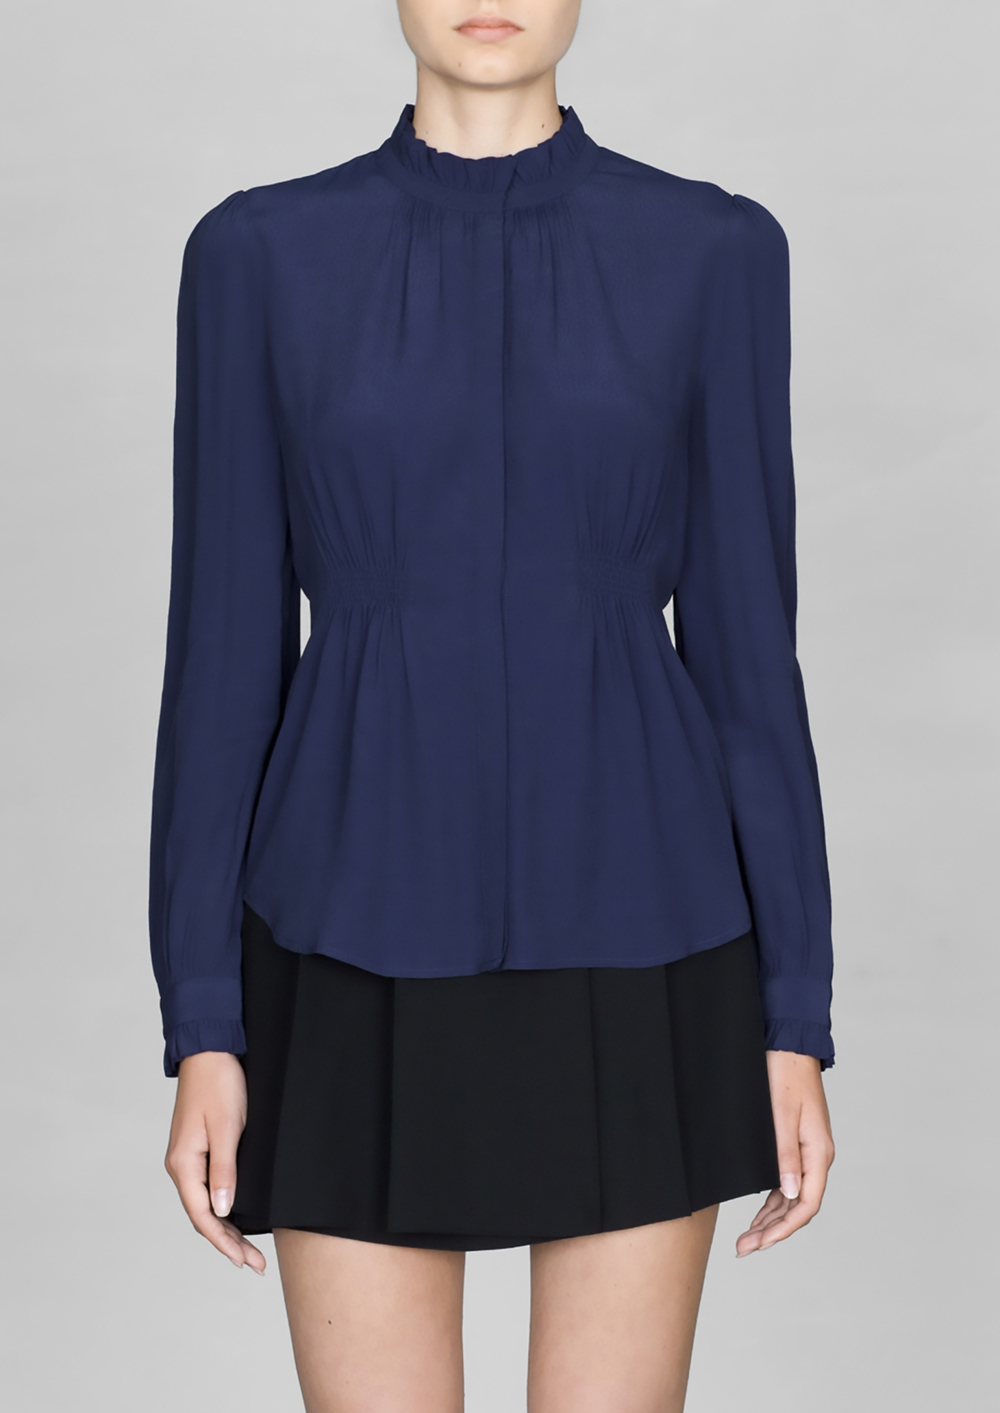 &otherstories high neck blouse 1500.jpg